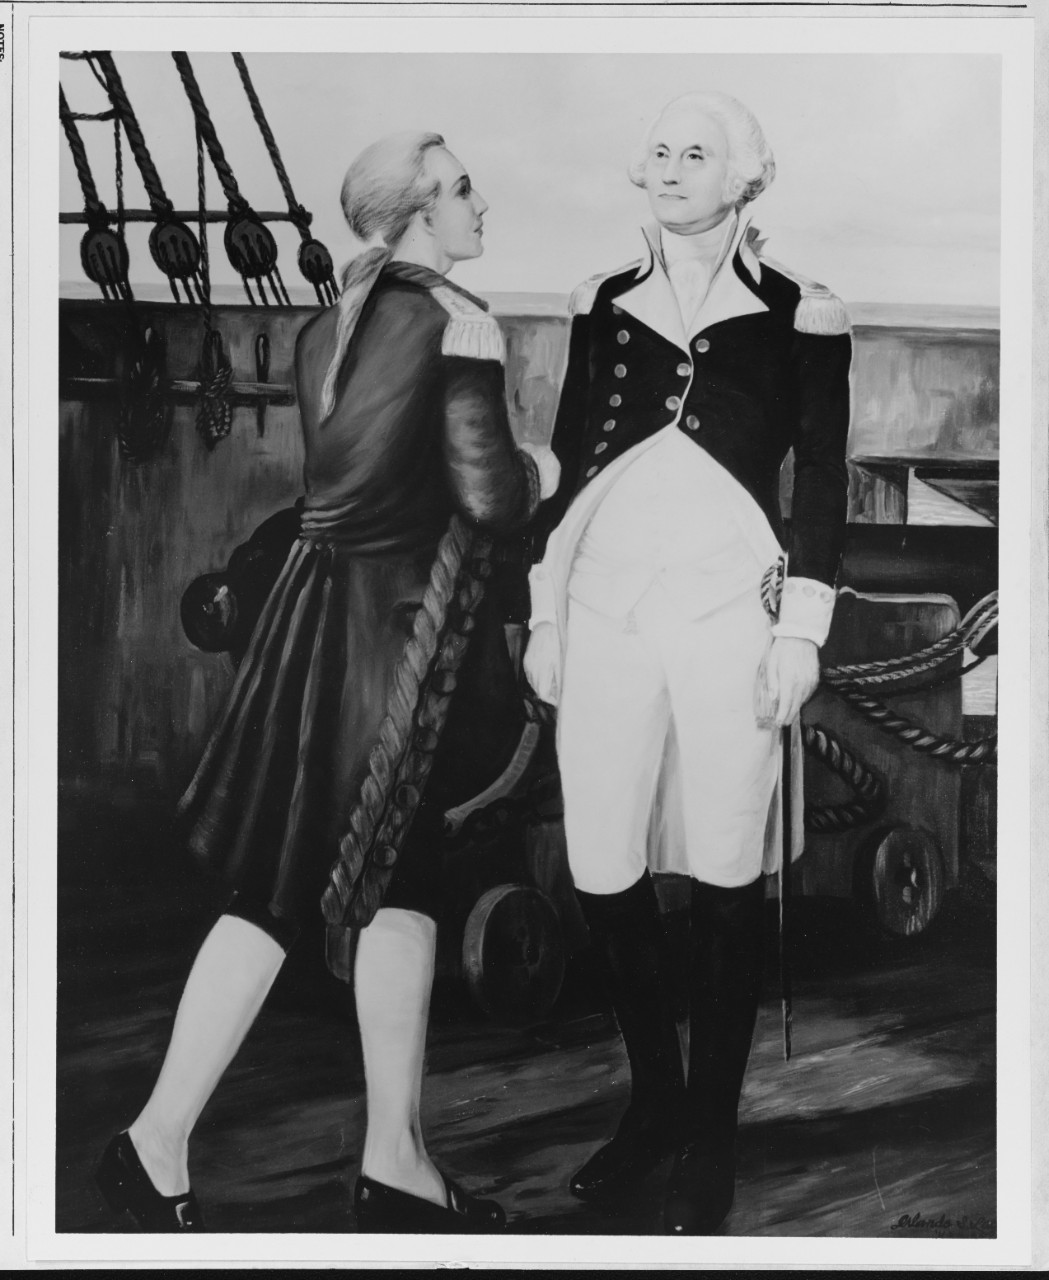 George Washington aboard ship - an oil painting by Orlando S. Lagman, USN (1965)